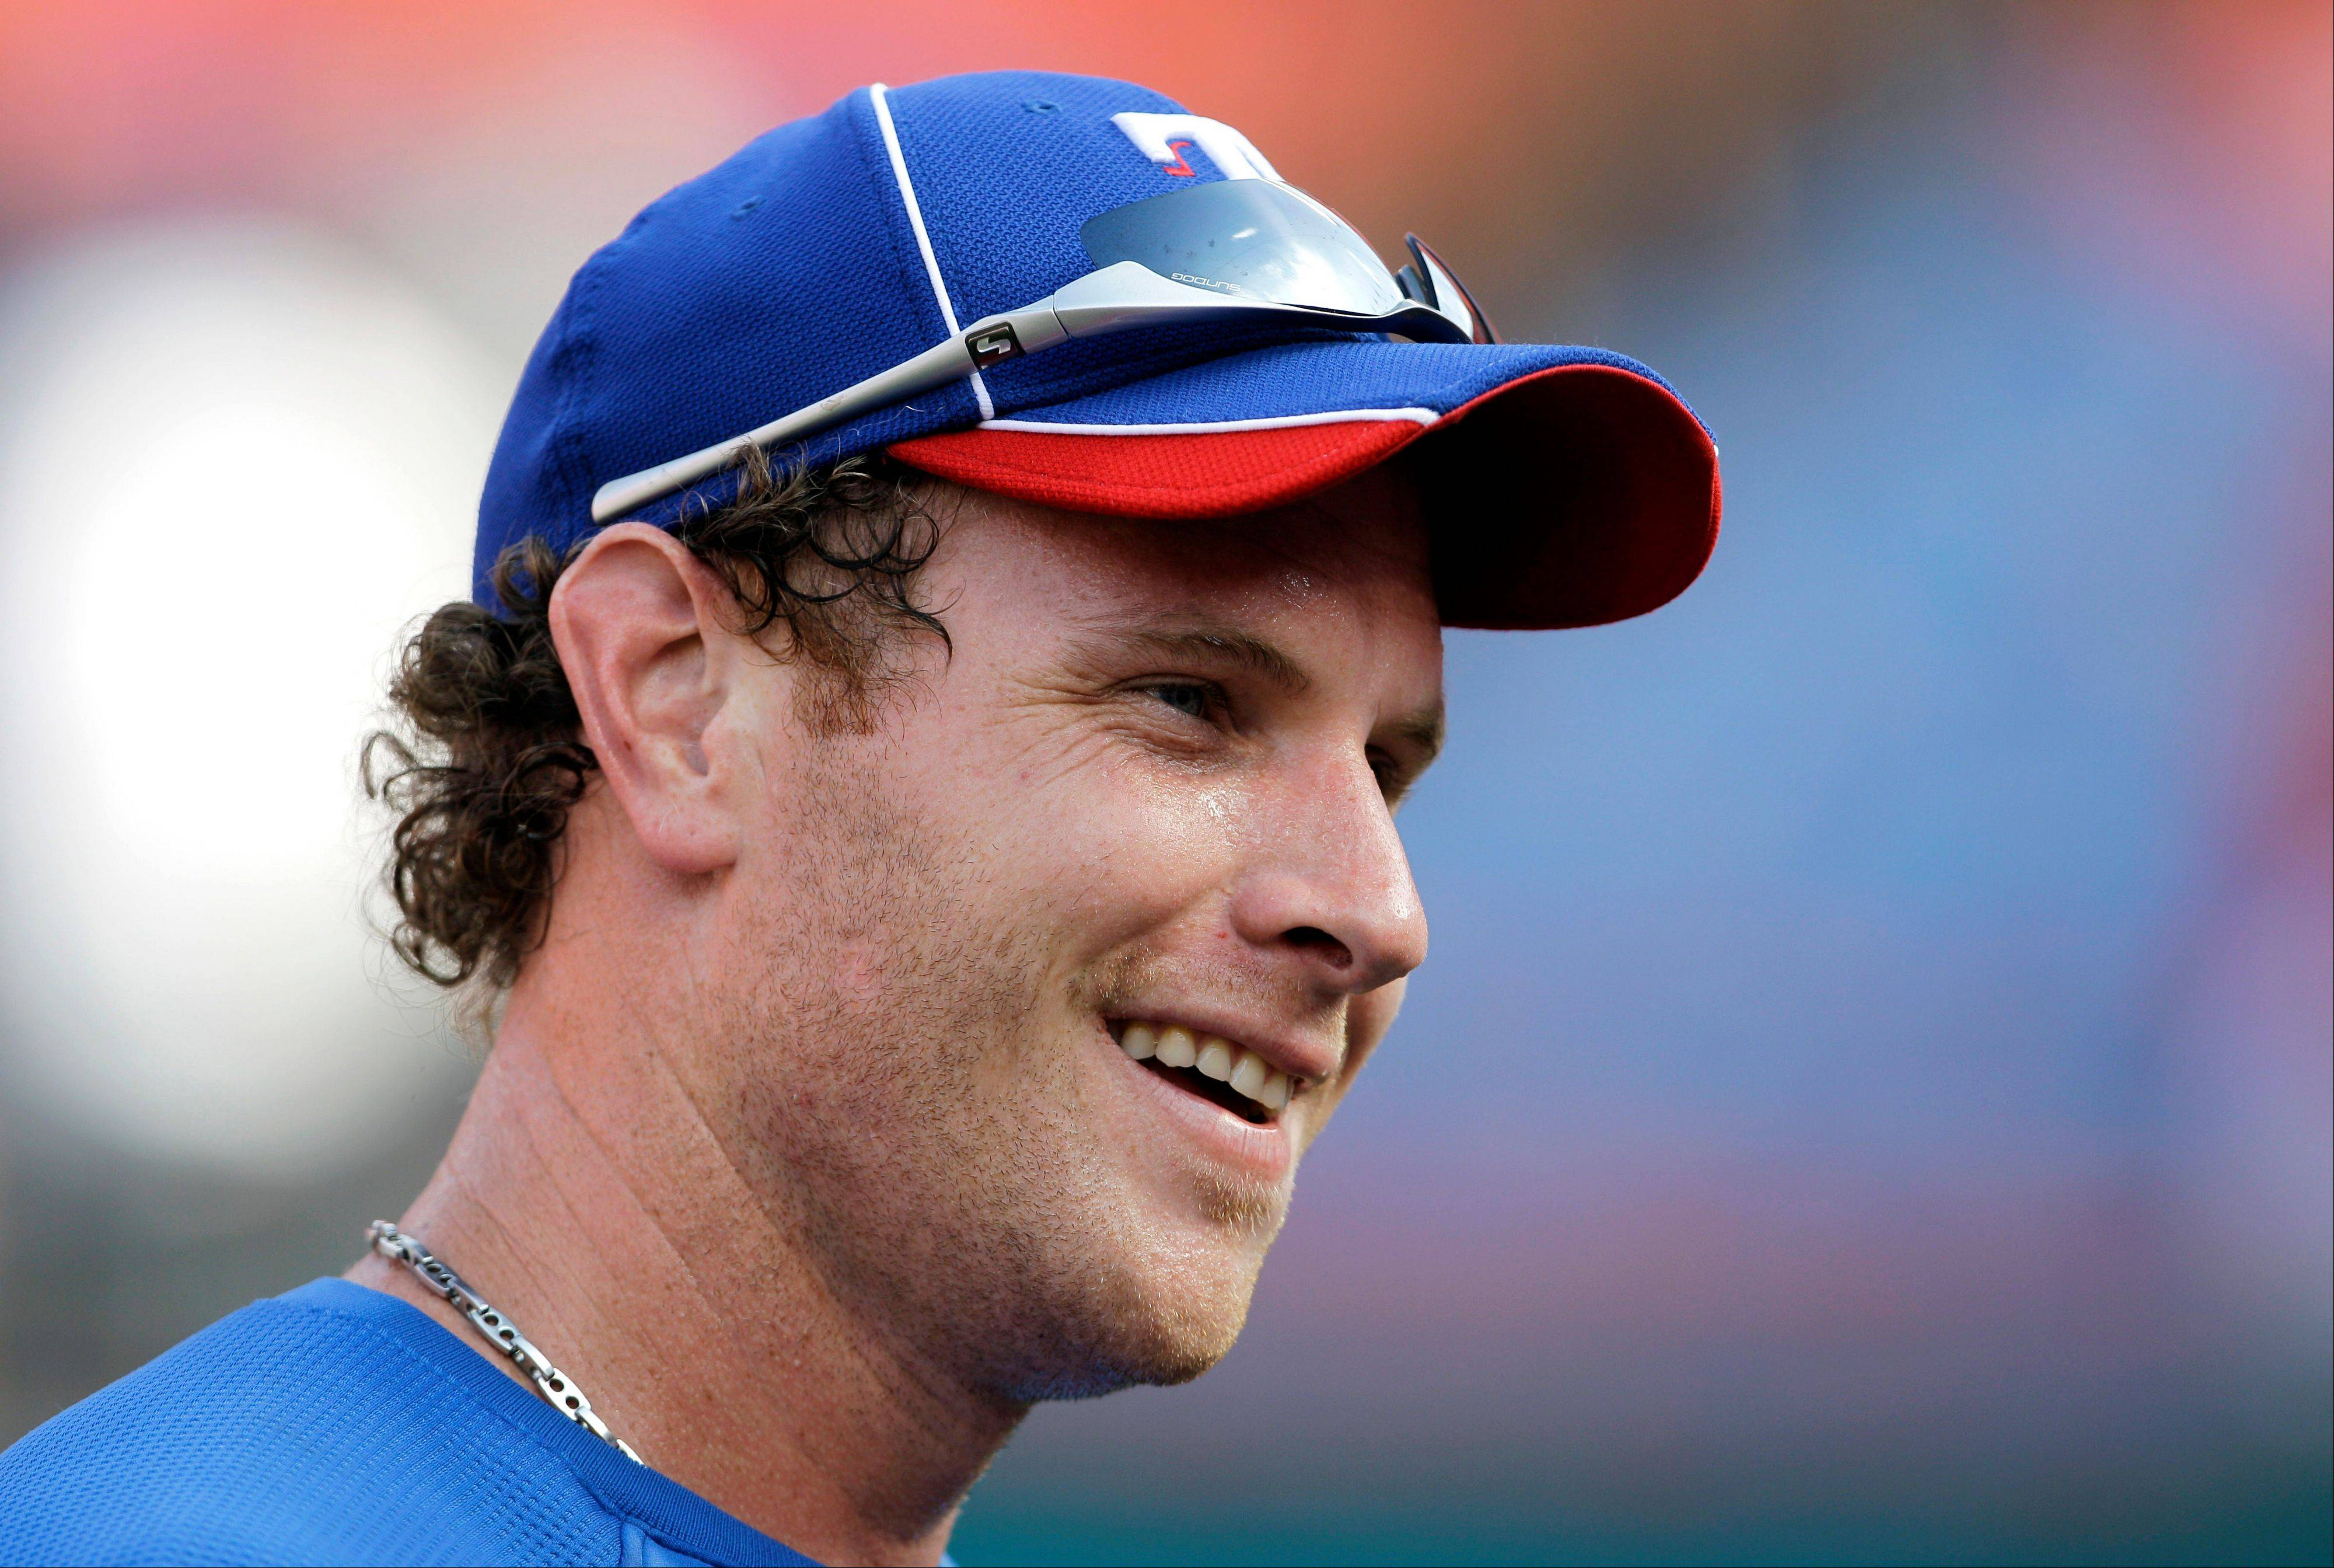 Josh Hamilton, who led the Texas Rangers to two World Series appearances, has agreed to a 5-year contract with the Los Angeles Angels worth $125 million.